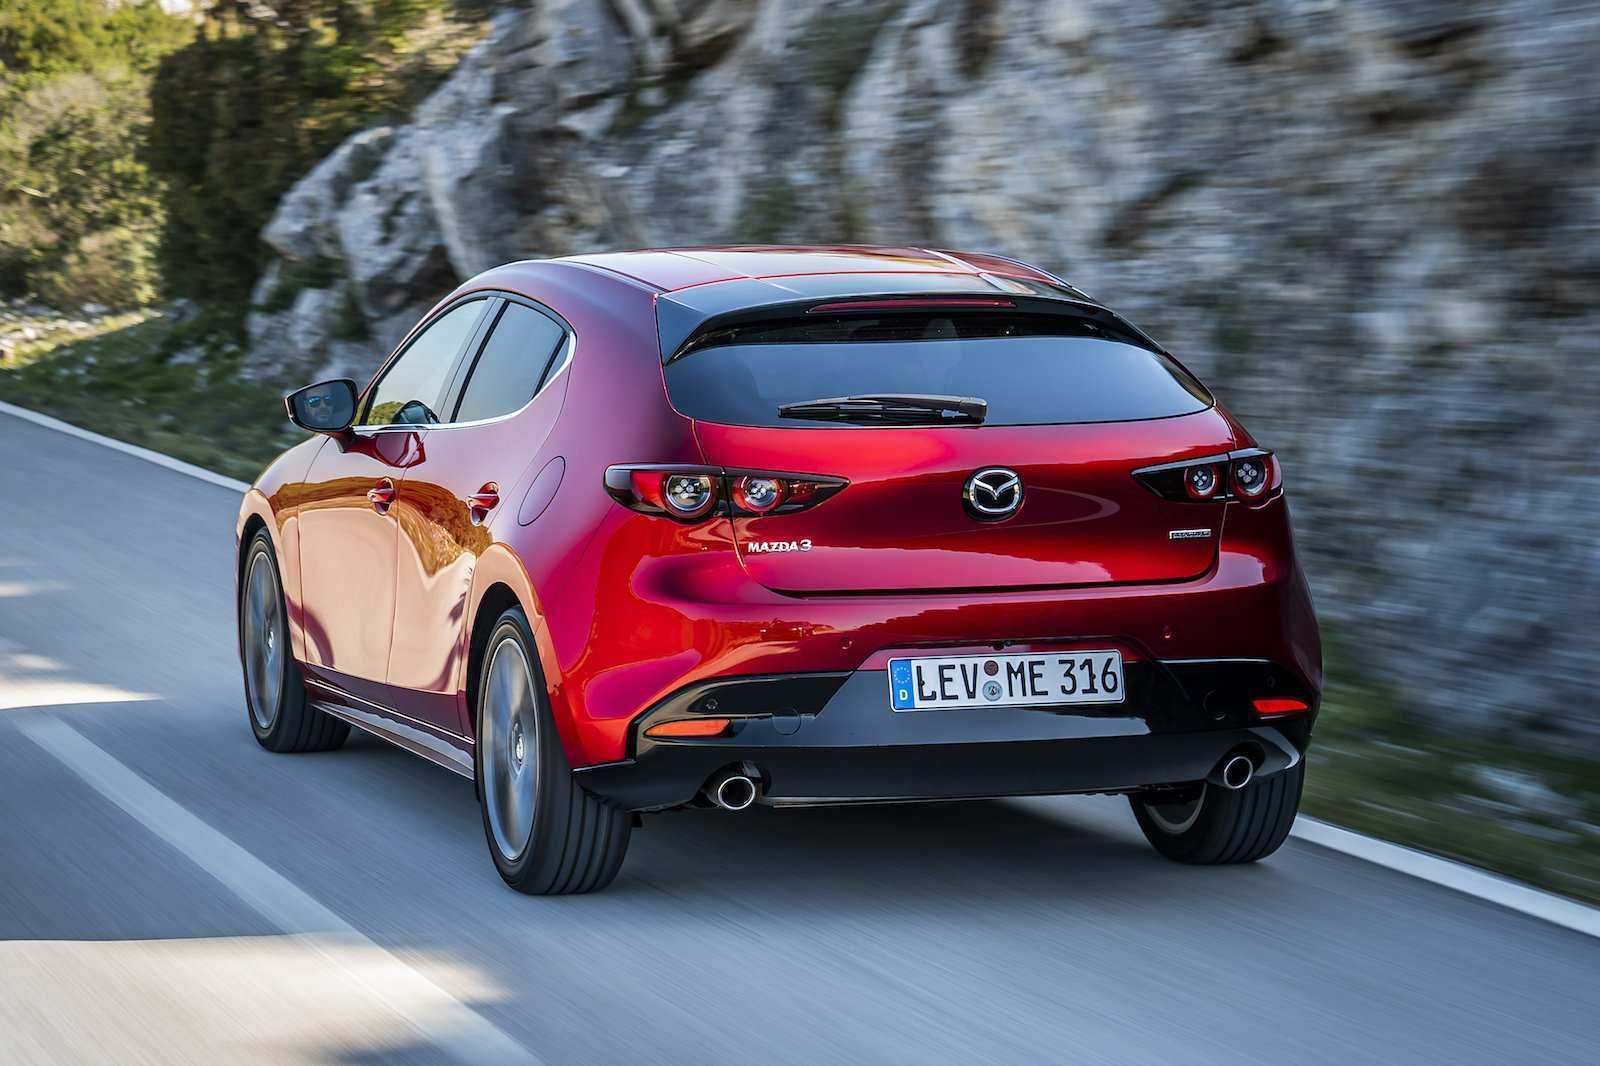 33 Great Mazdas New Engine For 2019 Review Specs And Release Date Style for Mazdas New Engine For 2019 Review Specs And Release Date